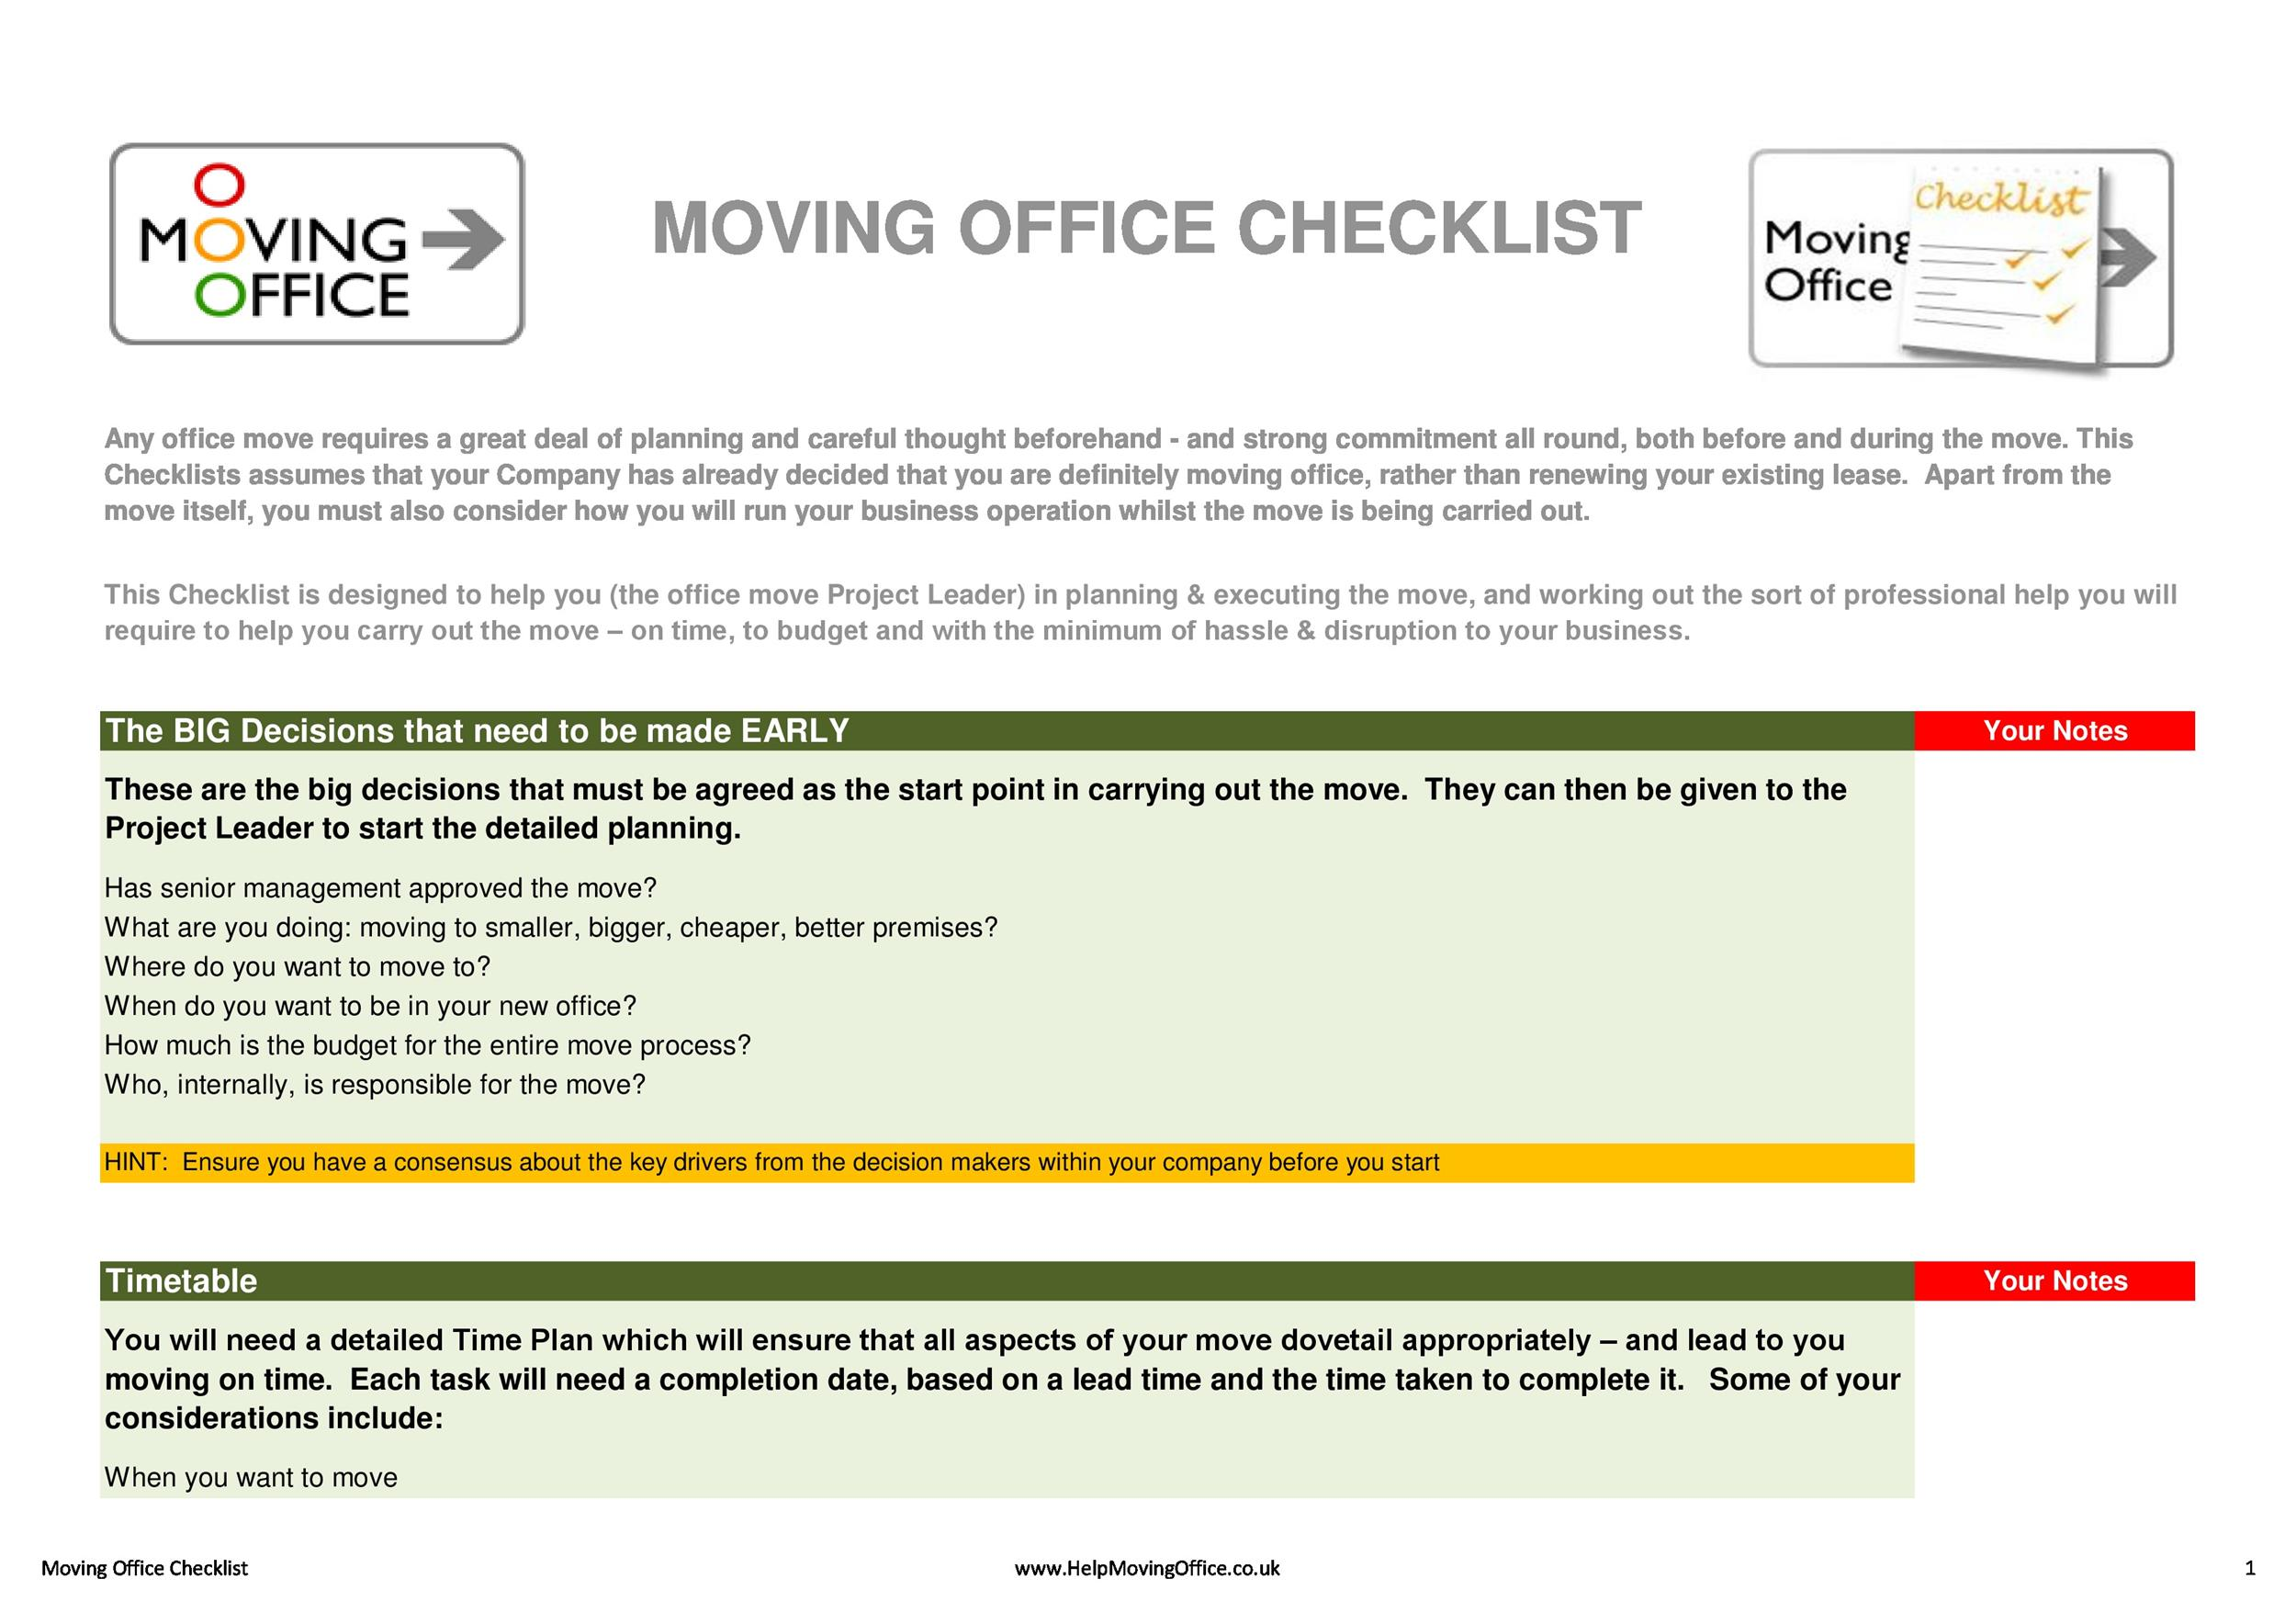 45 great moving checklists